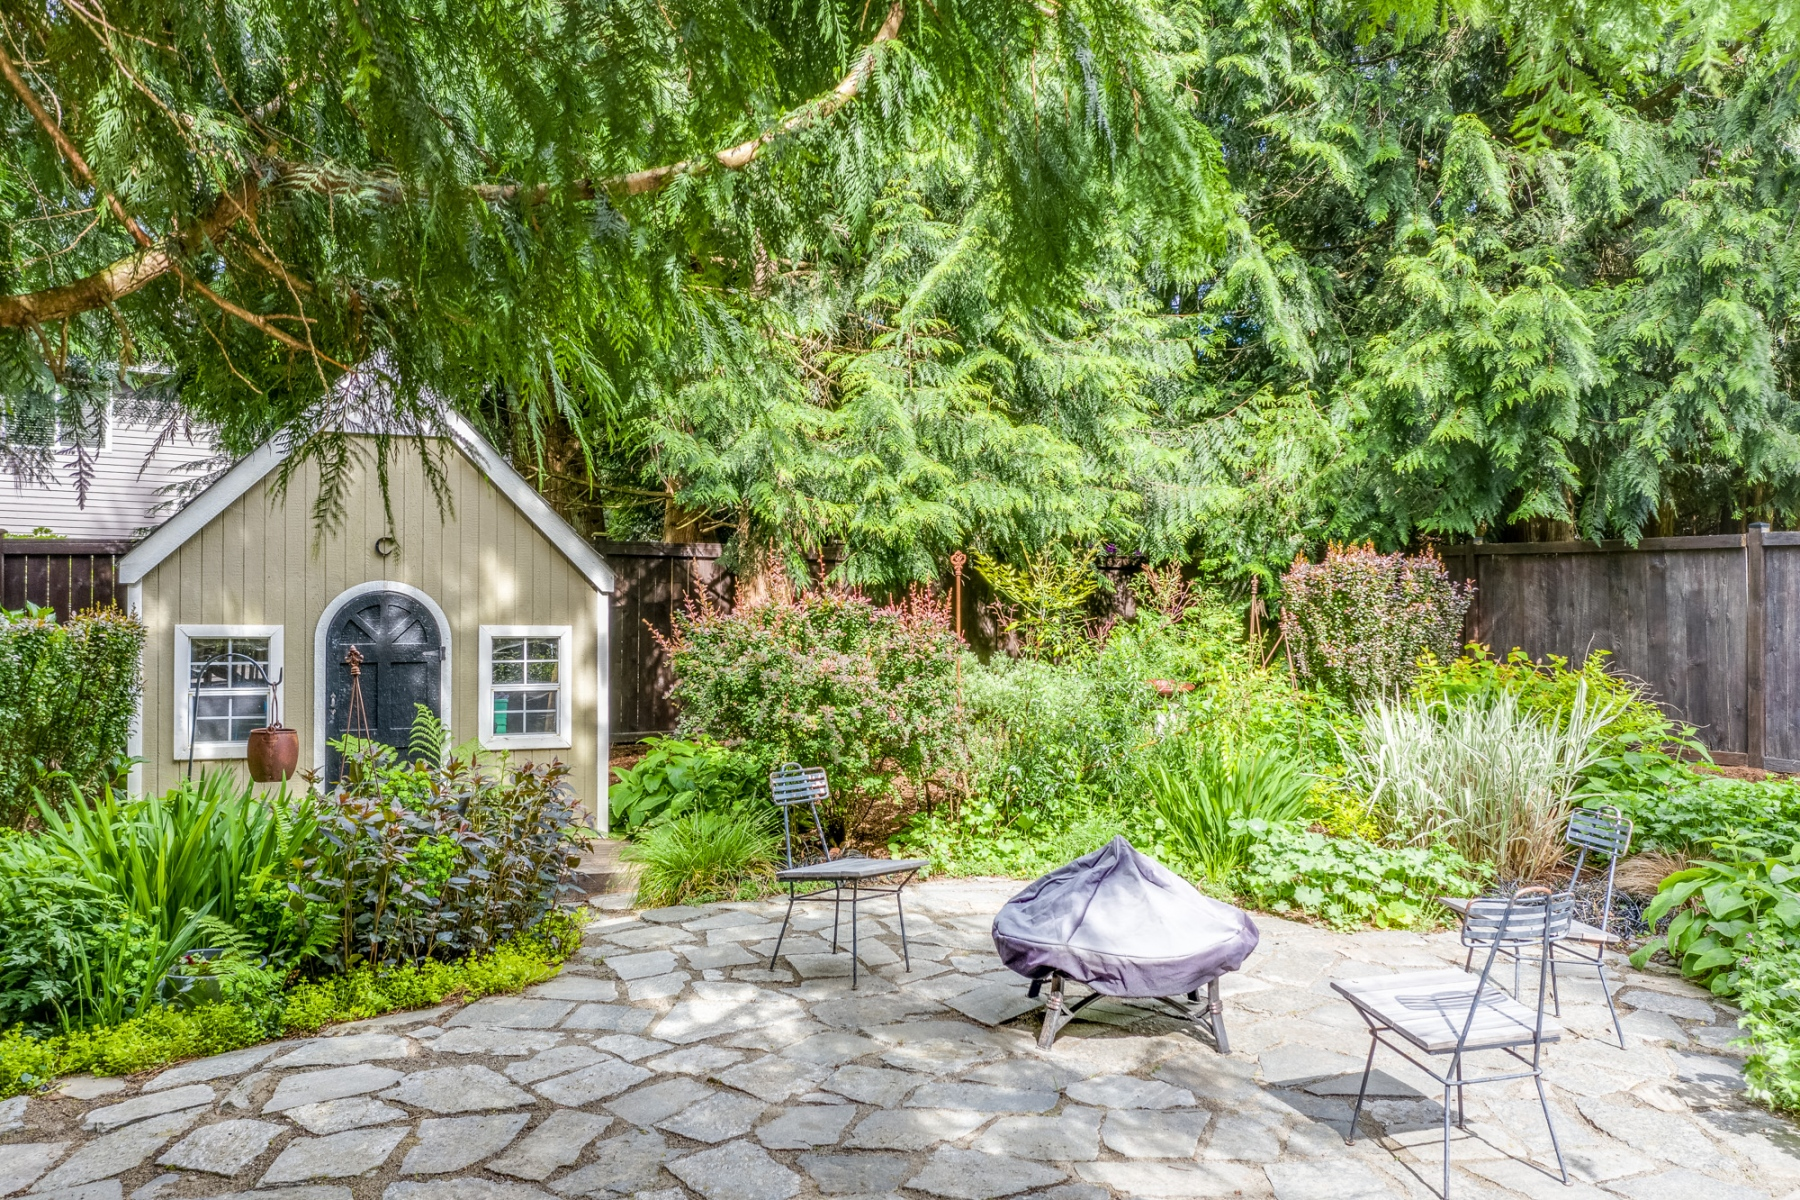 14153-176th-Ave-NE-Redmond-31